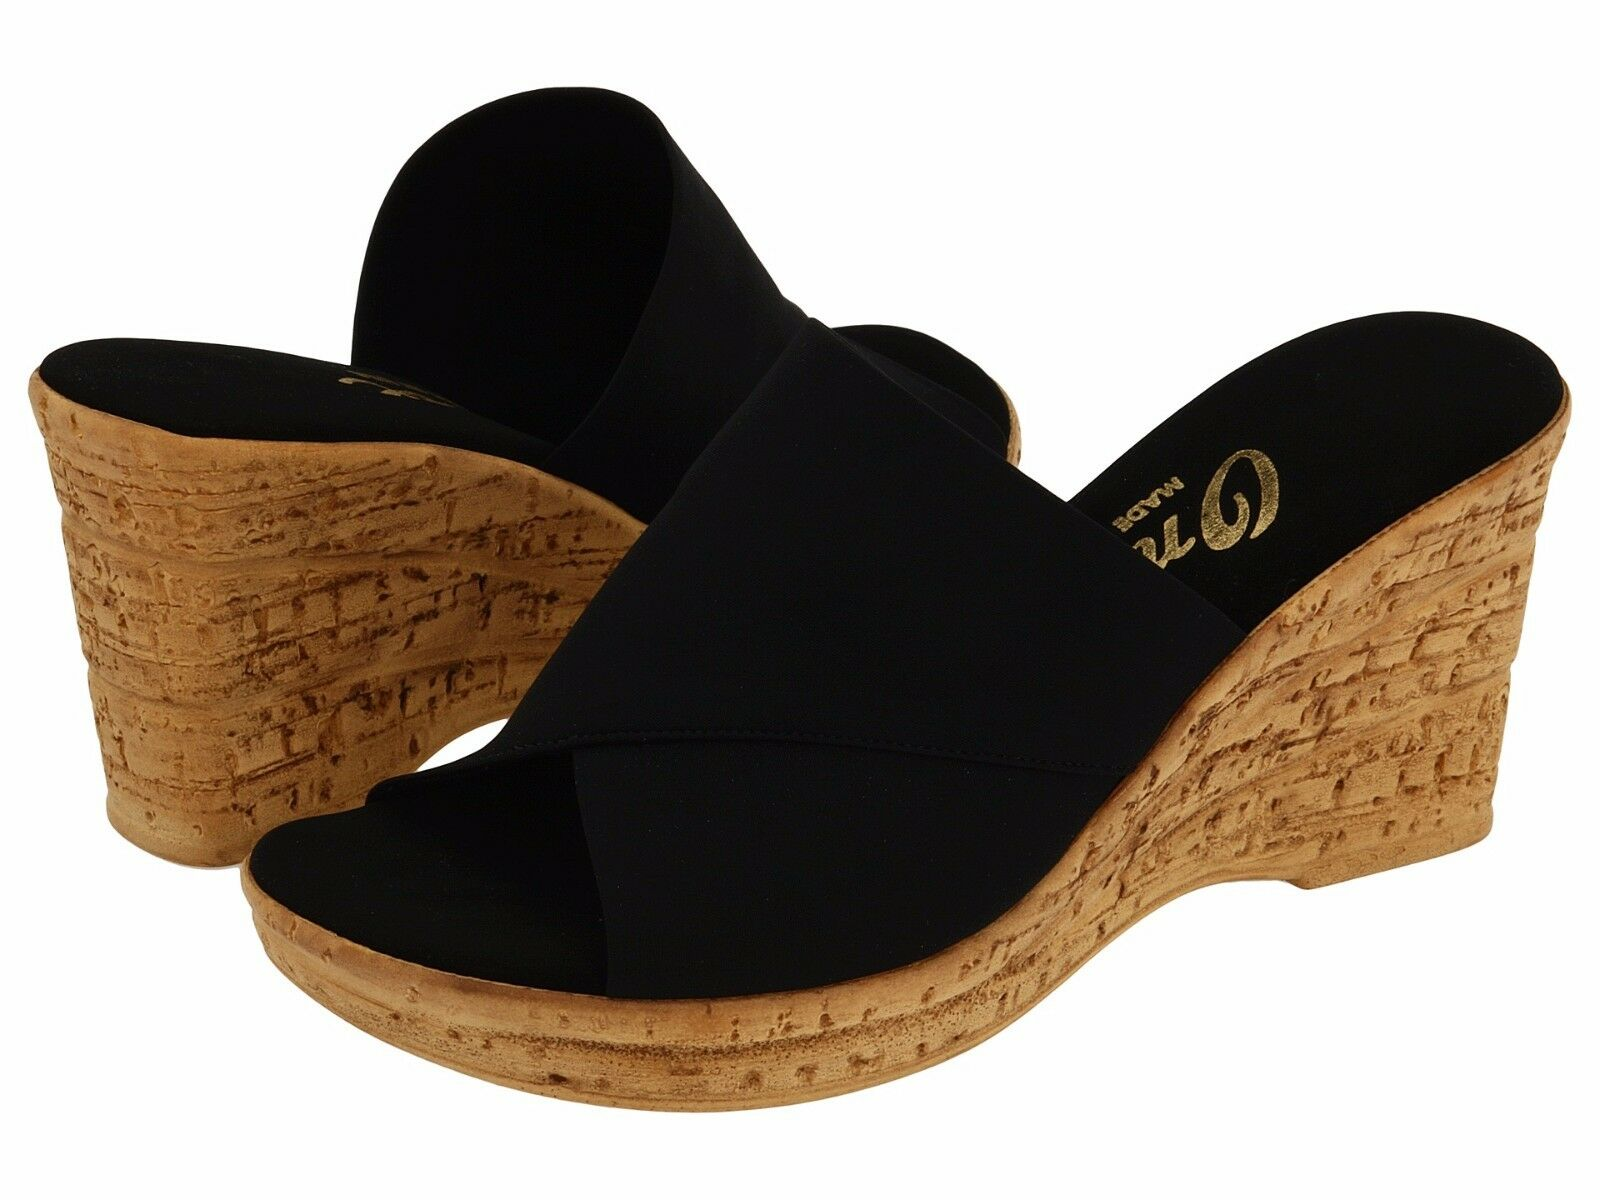 fabbrica diretta ONEX donna CHRISTINA WEDGE SLIDE SLIDE SLIDE COMFY SANDAL, MADE IN USA  incredibili sconti